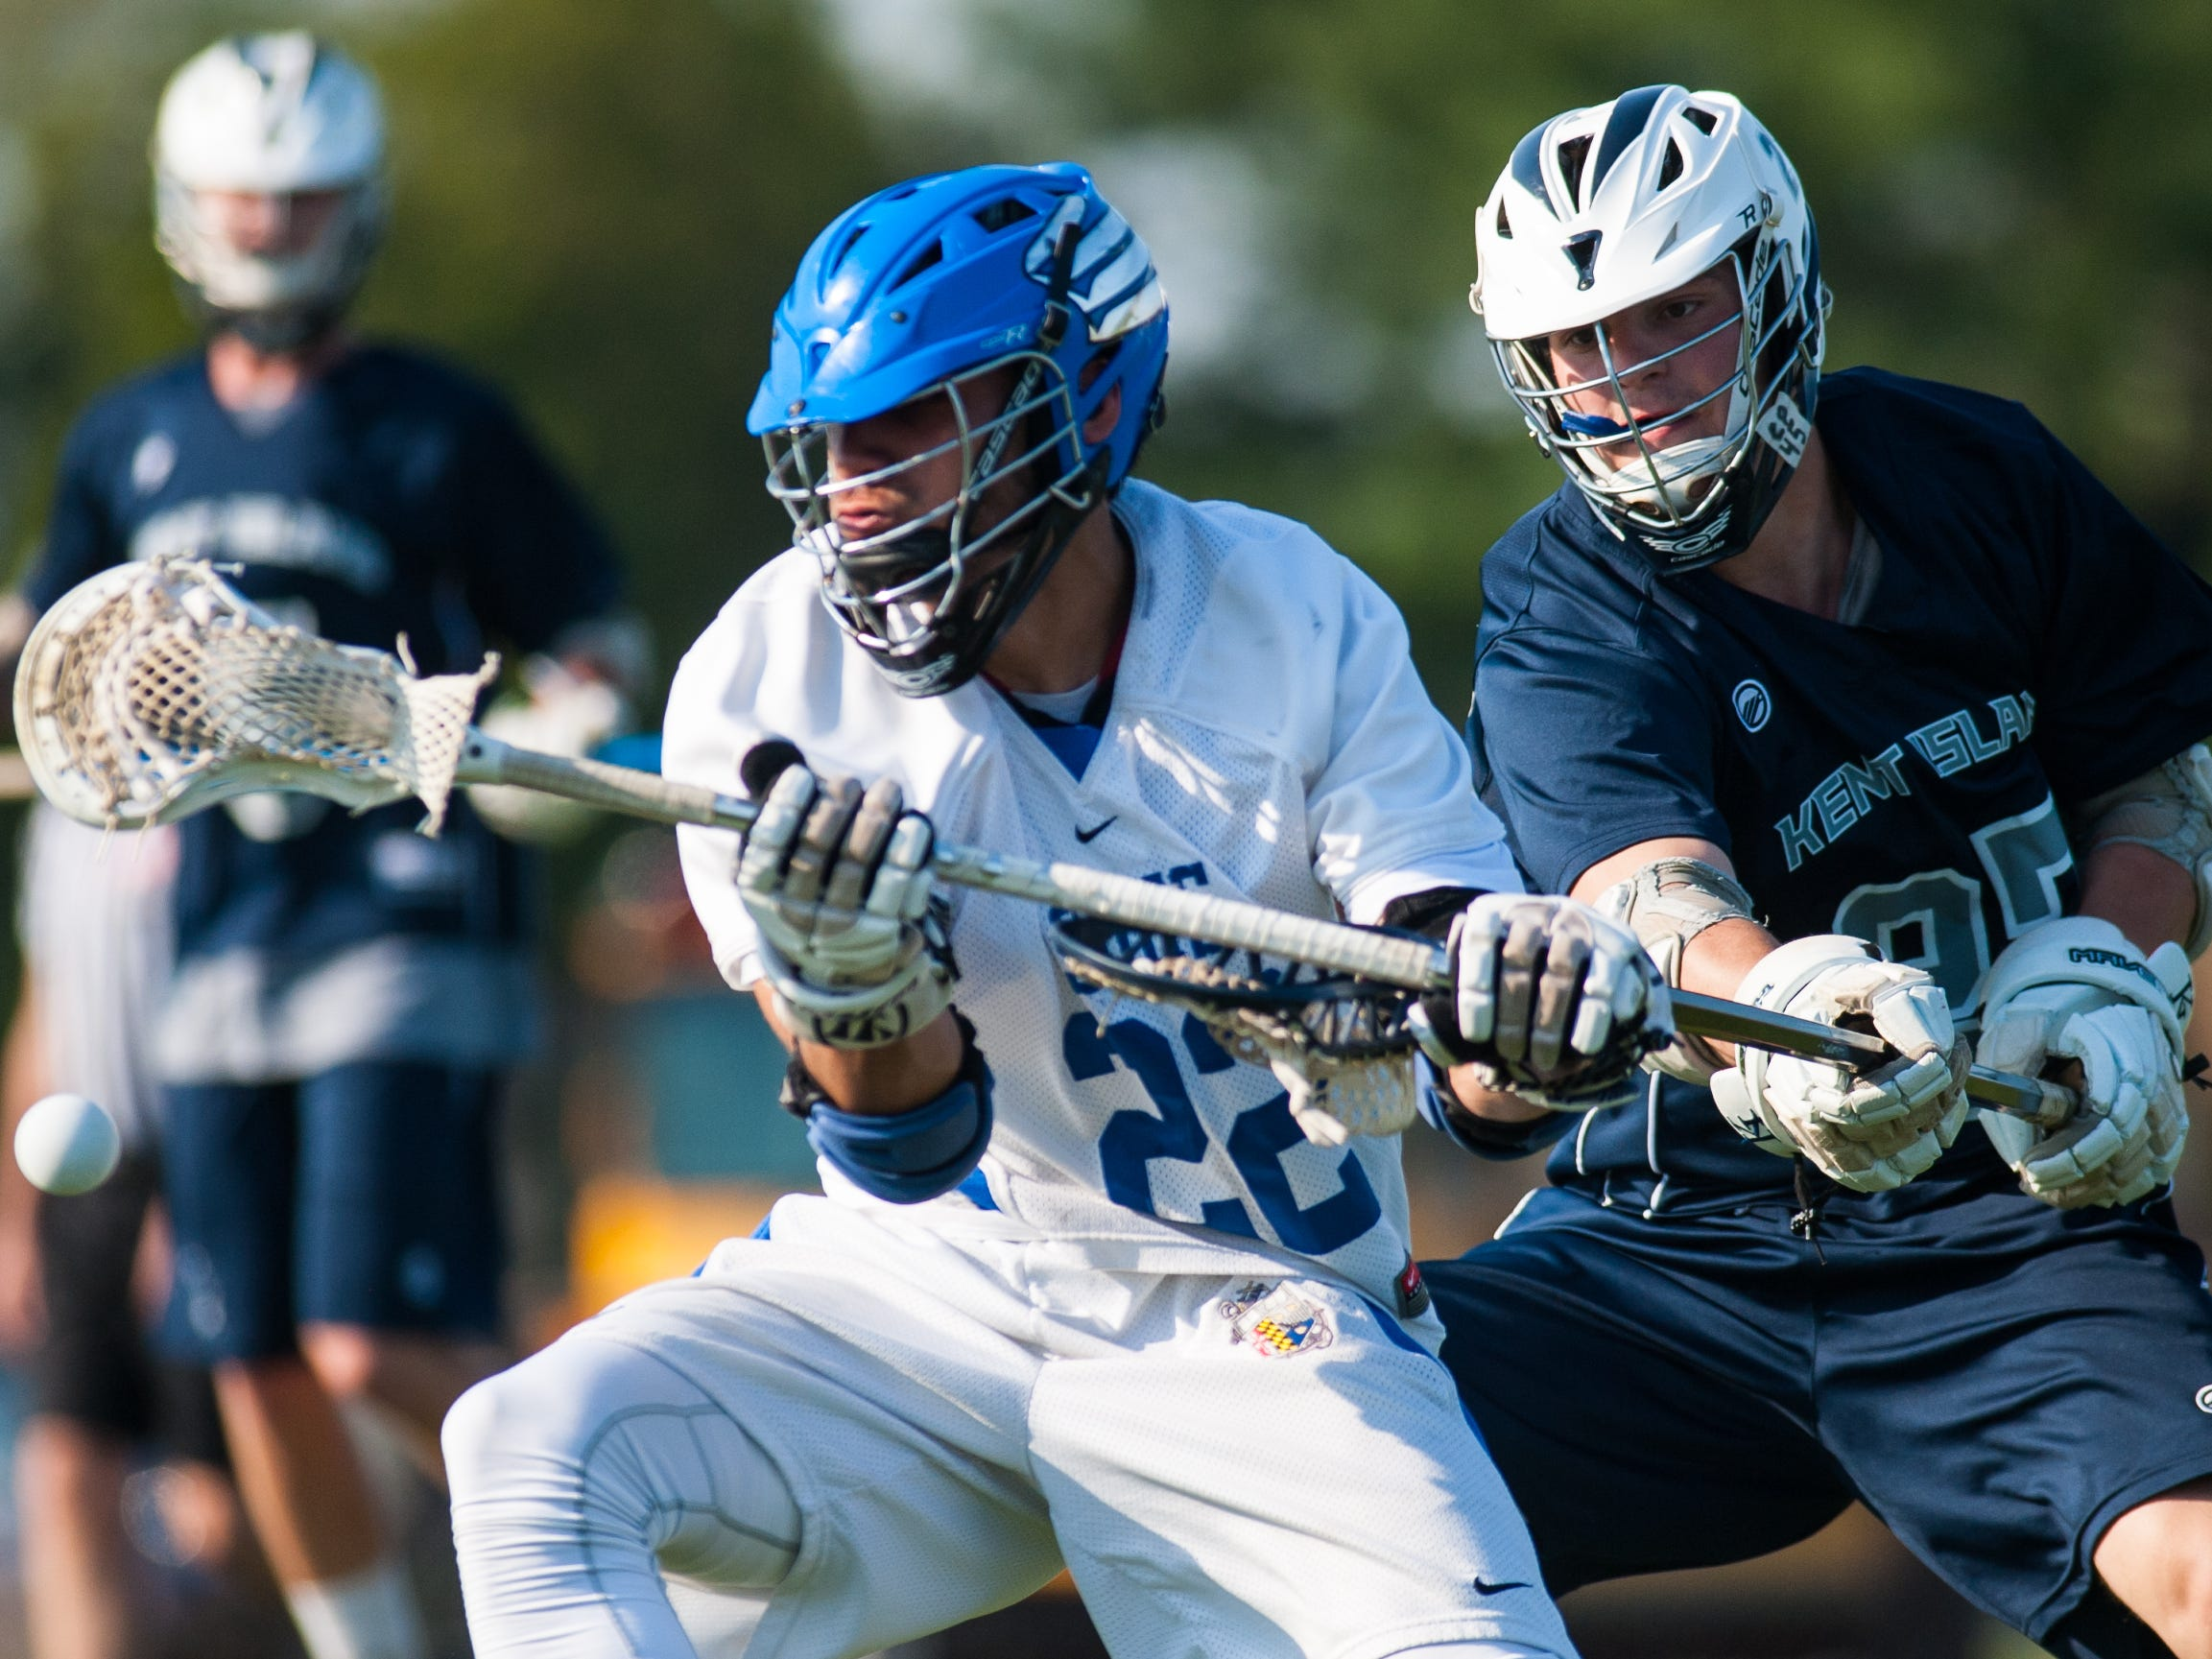 Stephen Decatur midfielder Matt LeCompte (22) is stripped by Kent Island defender Mike McCaslin (27) on Tuesday evening at Wicomico County Stadium in the Bayside Lacrosse Championship.